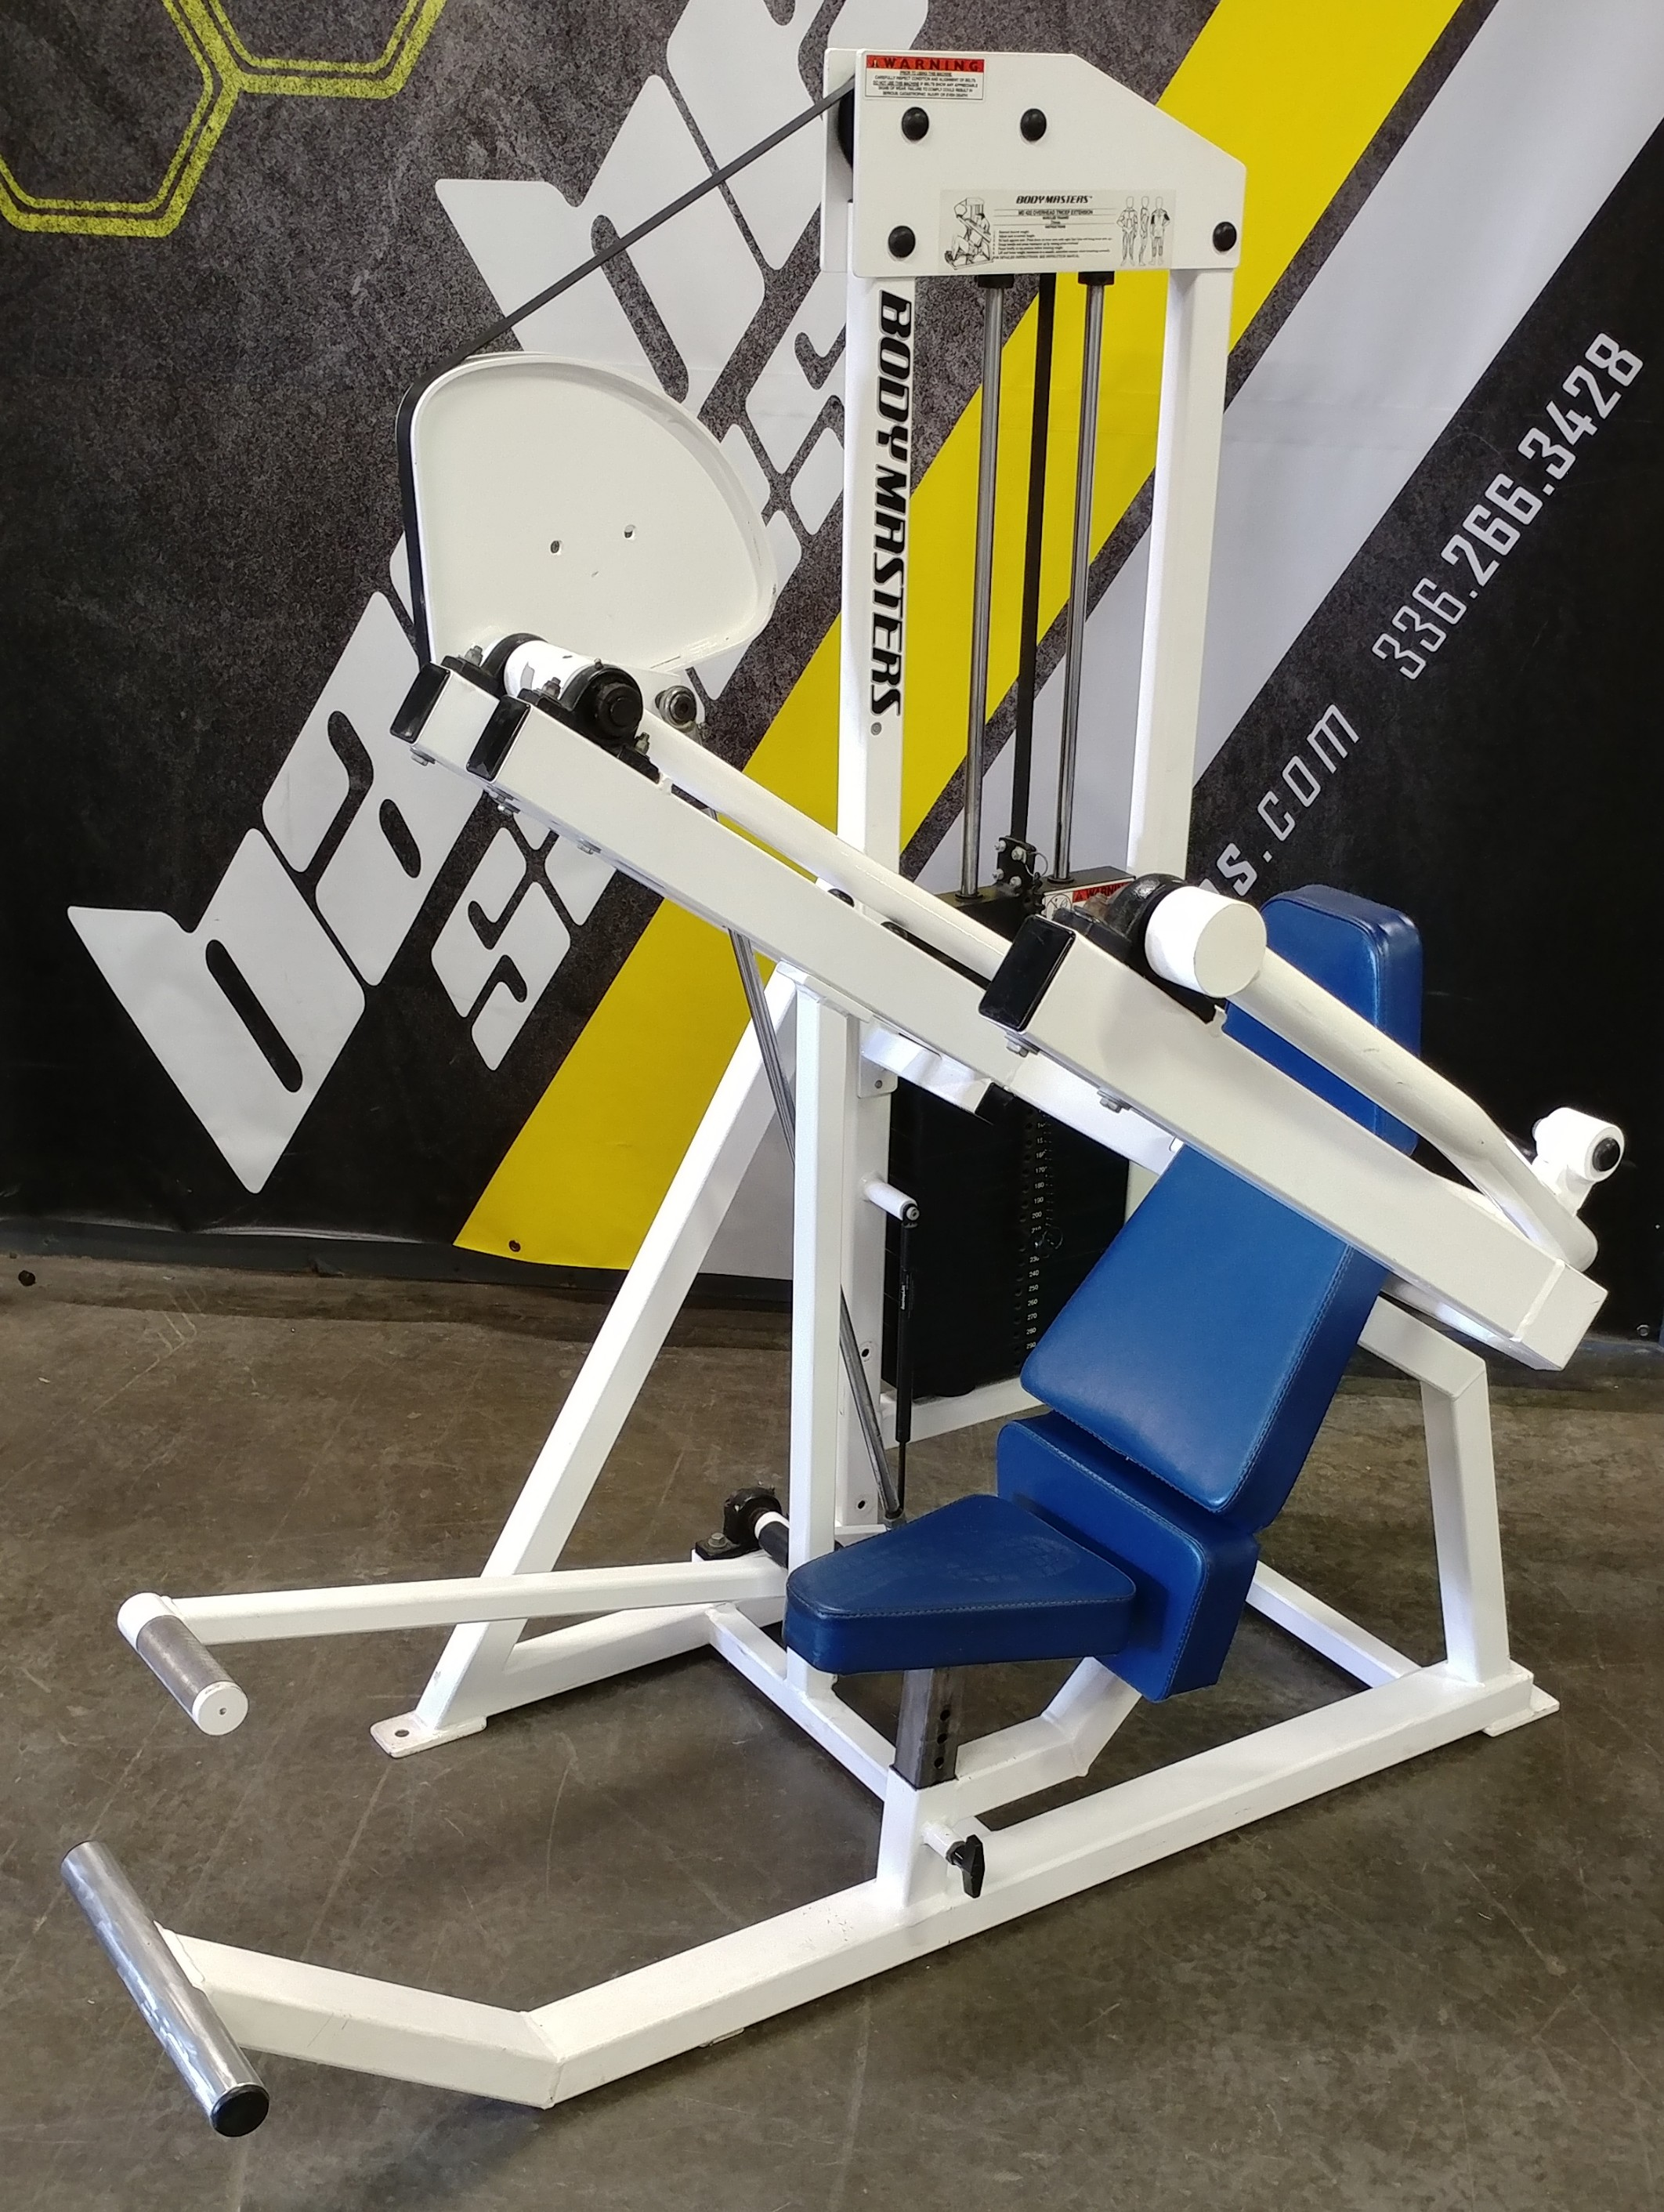 Used Gym Equipment Inventory